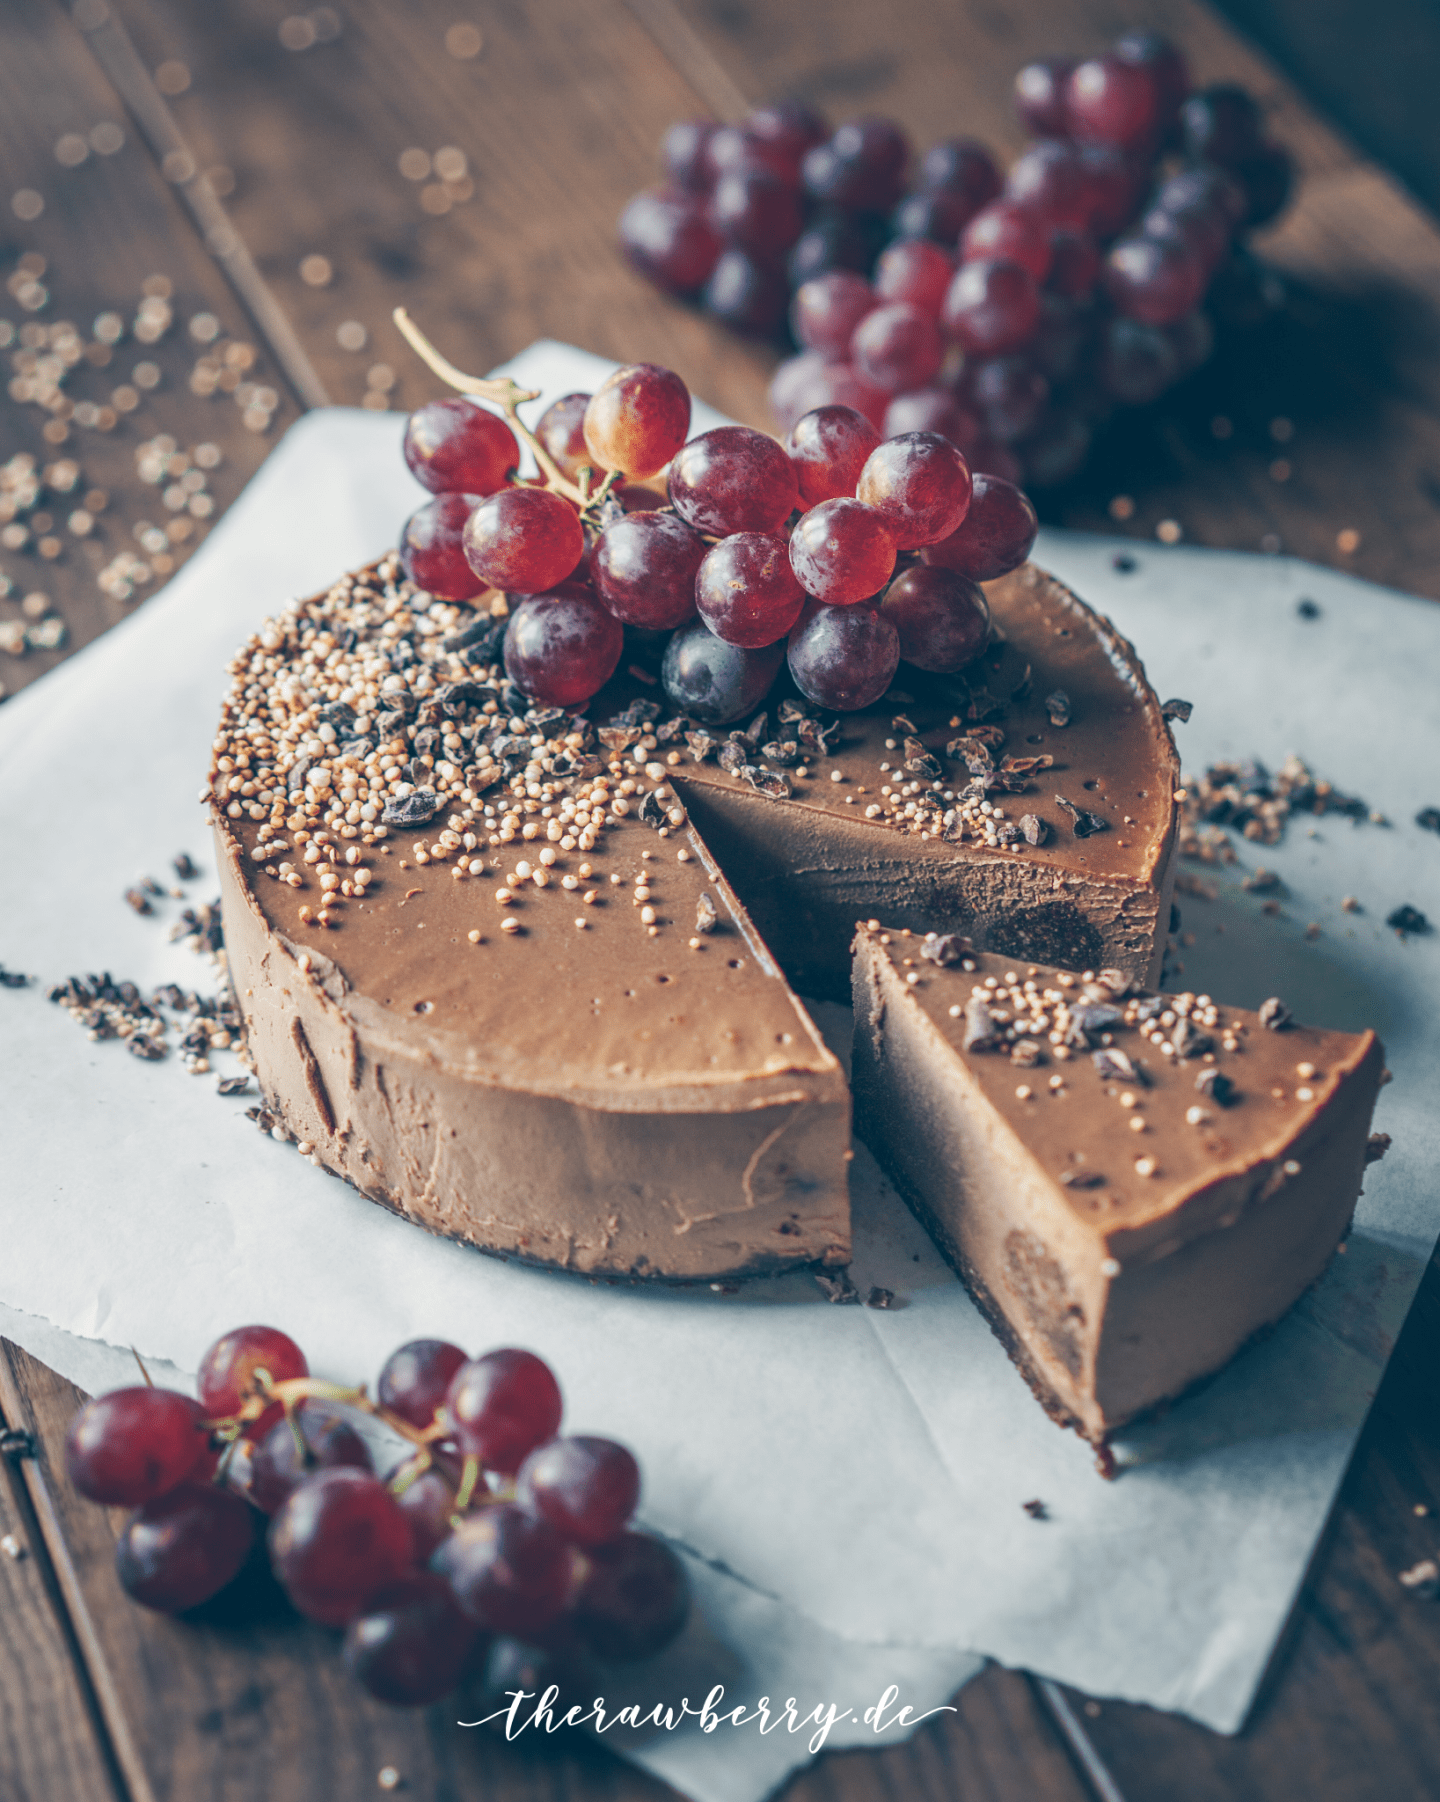 healthy, food, essen, lecker, gesund, delicious, tripple chocolate, dreifach Schokolade, Schokolade, chocolate, chocaholic, cheesecake, Käsekuchen, vegan, no dairy, gluten free, gluten frei, Kuchen, cake, grapes, cashews, no bake, yum, yummy,, therawberry, food styling, food photography